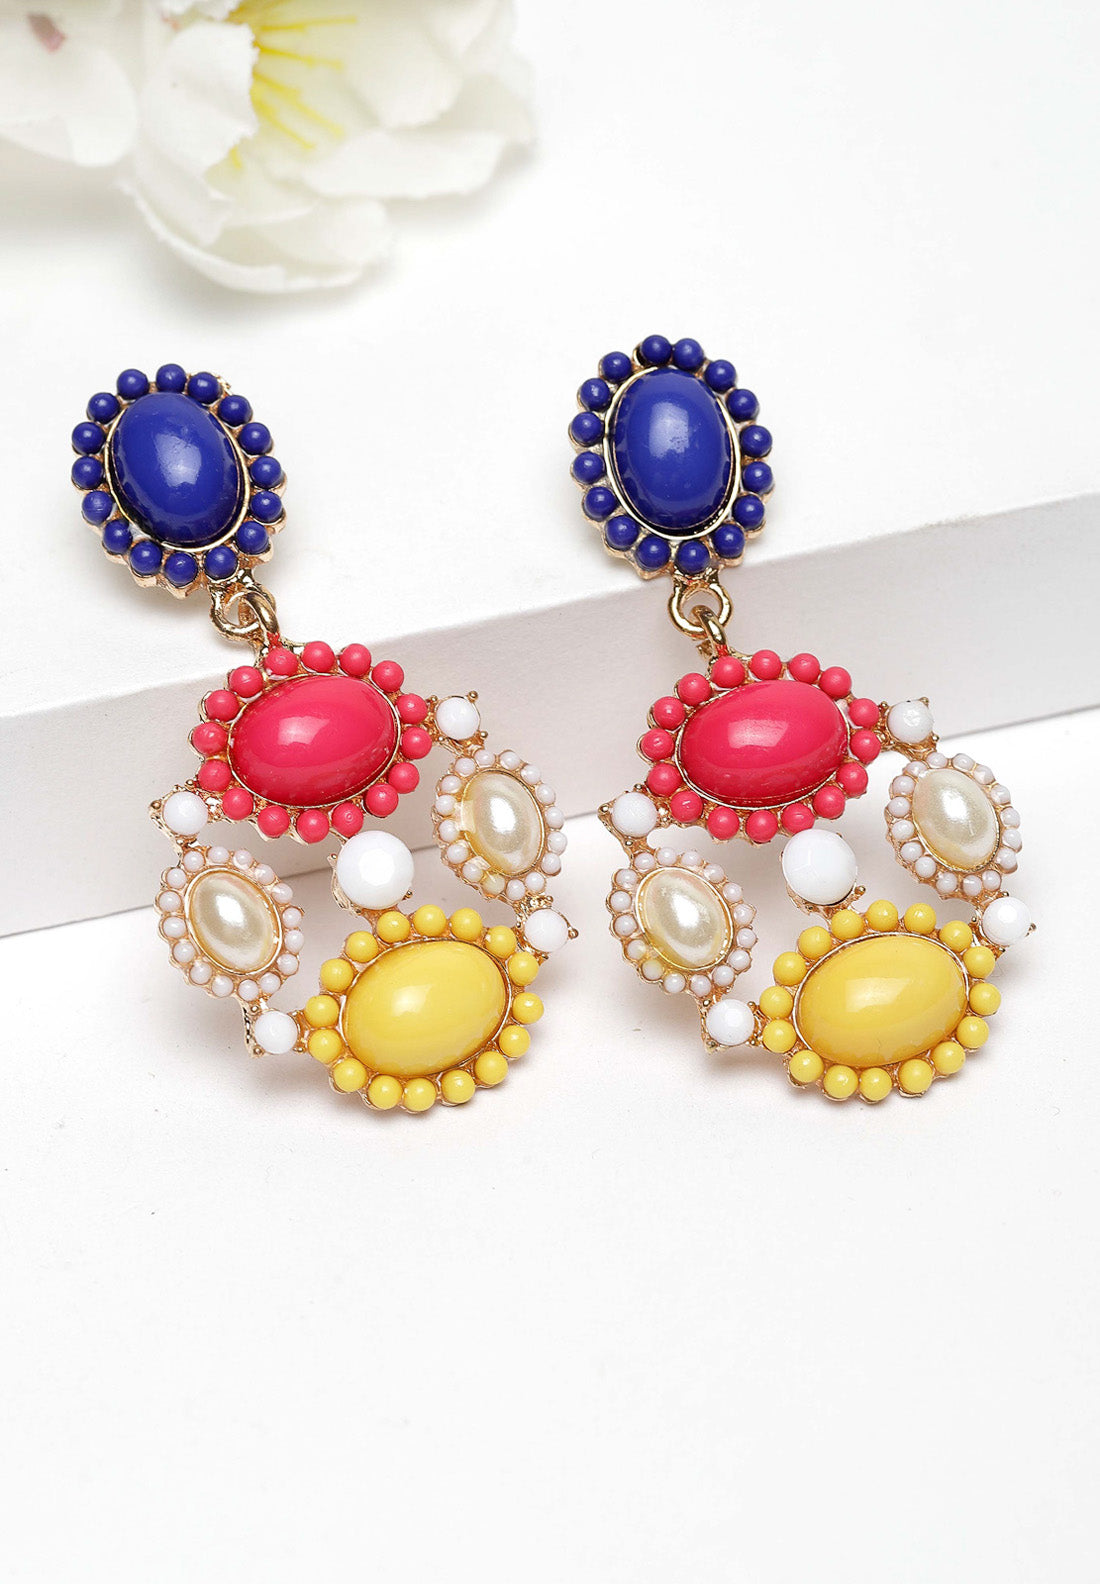 Avant-Garde Paris Multicolored Quirky Earrings